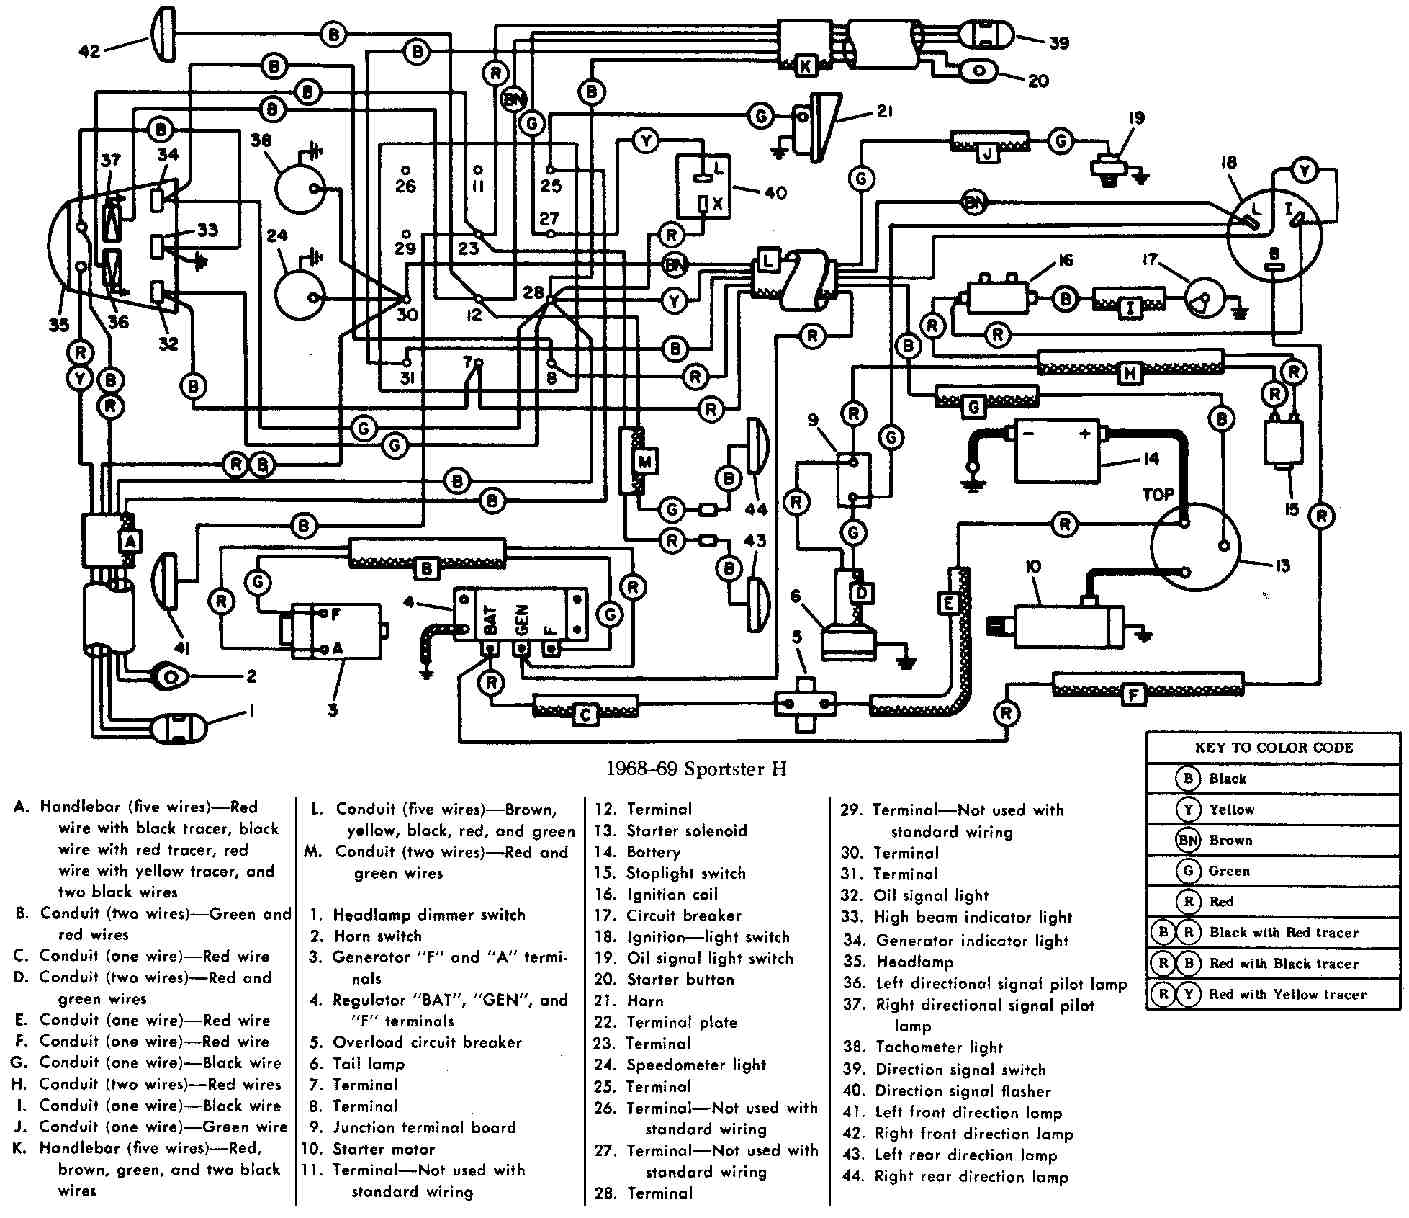 2003 Harley Electra Glide Wiring Diagram For Broan Bathroom Fan Davidson Sportster 1968-1969 Electrical | All About Diagrams